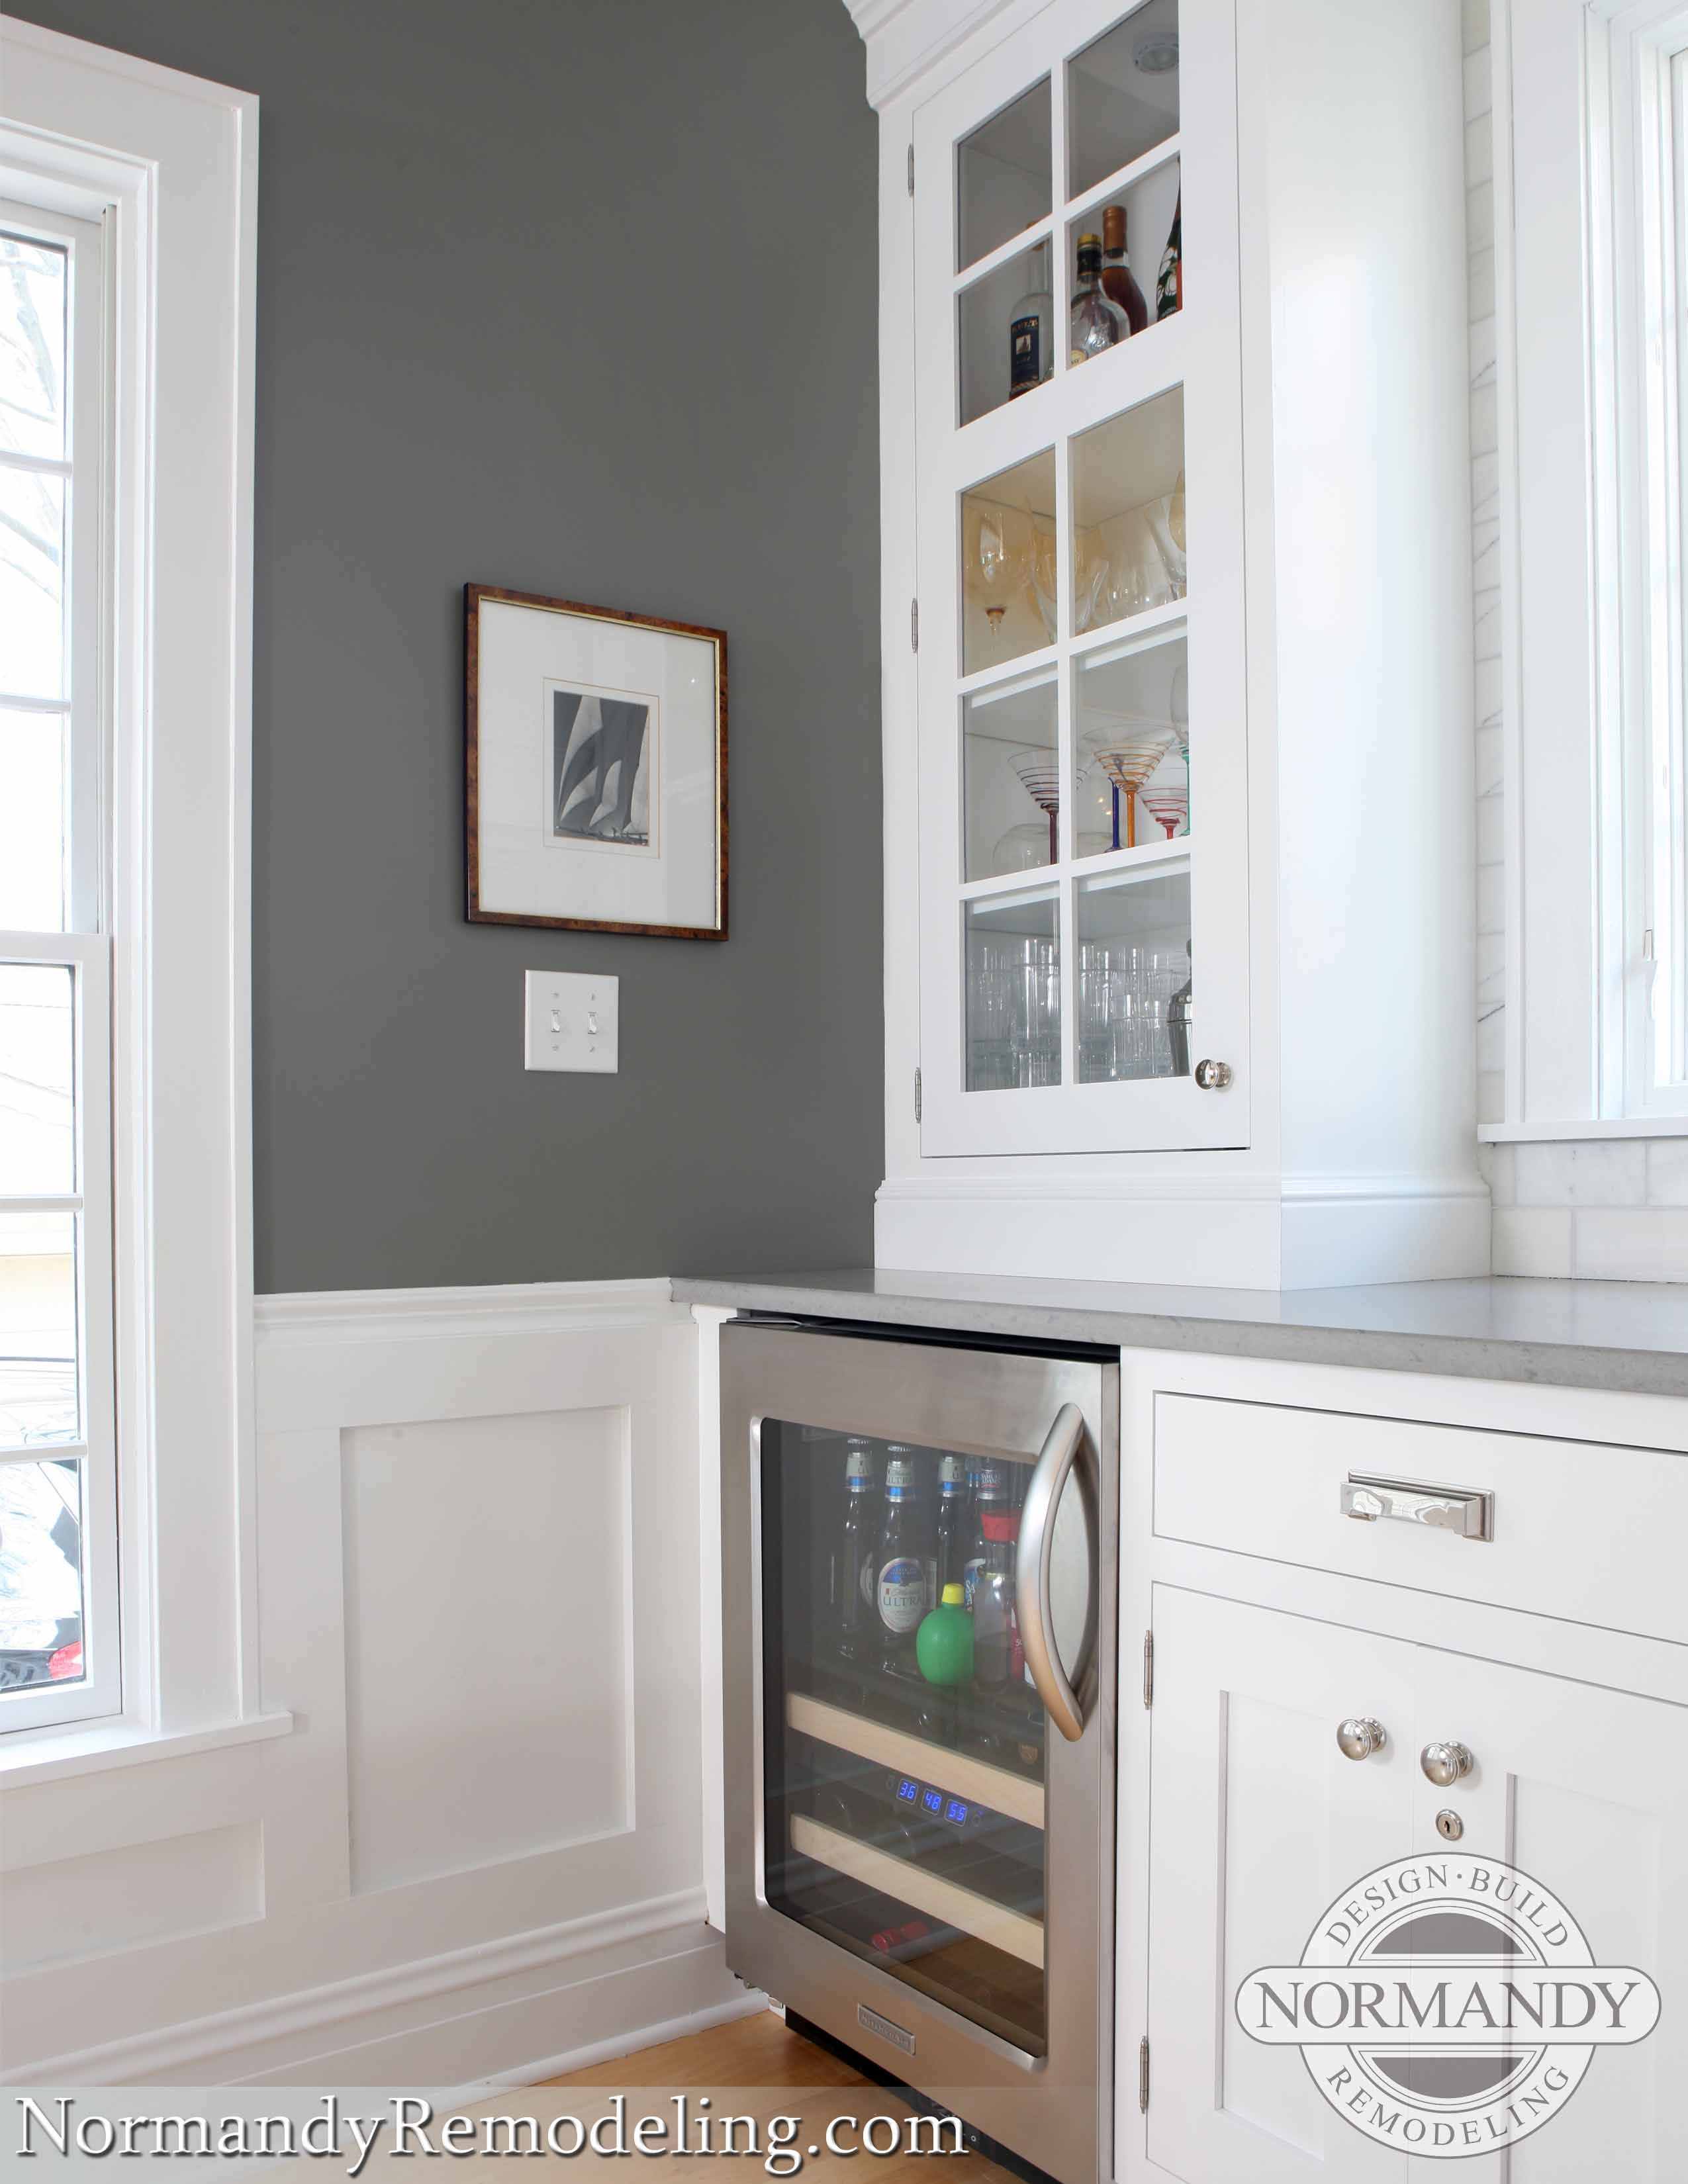 gray and white | Home ideas | Pinterest | Beverage center, Normandy ...